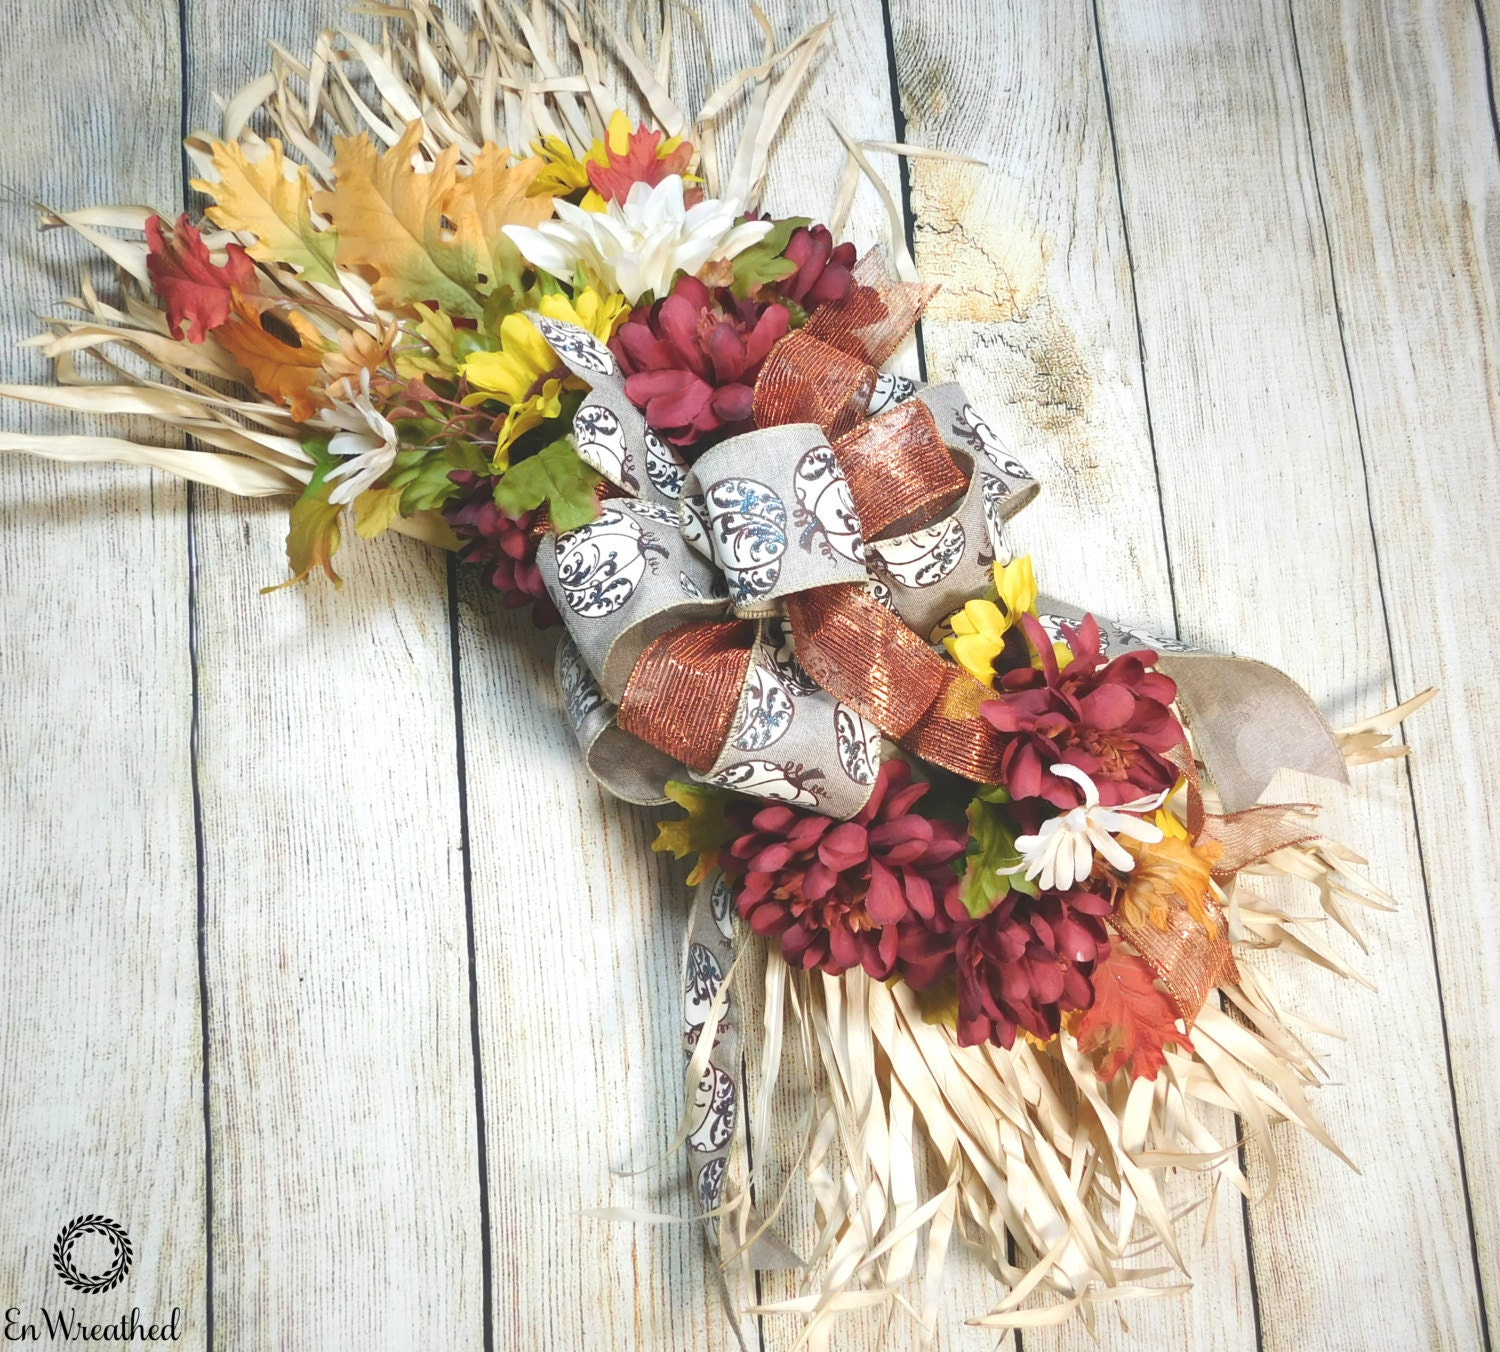 Fall Door Swags: Fall Door Swag Door Swag Rustic Fall Swag Fall Swag Rustic